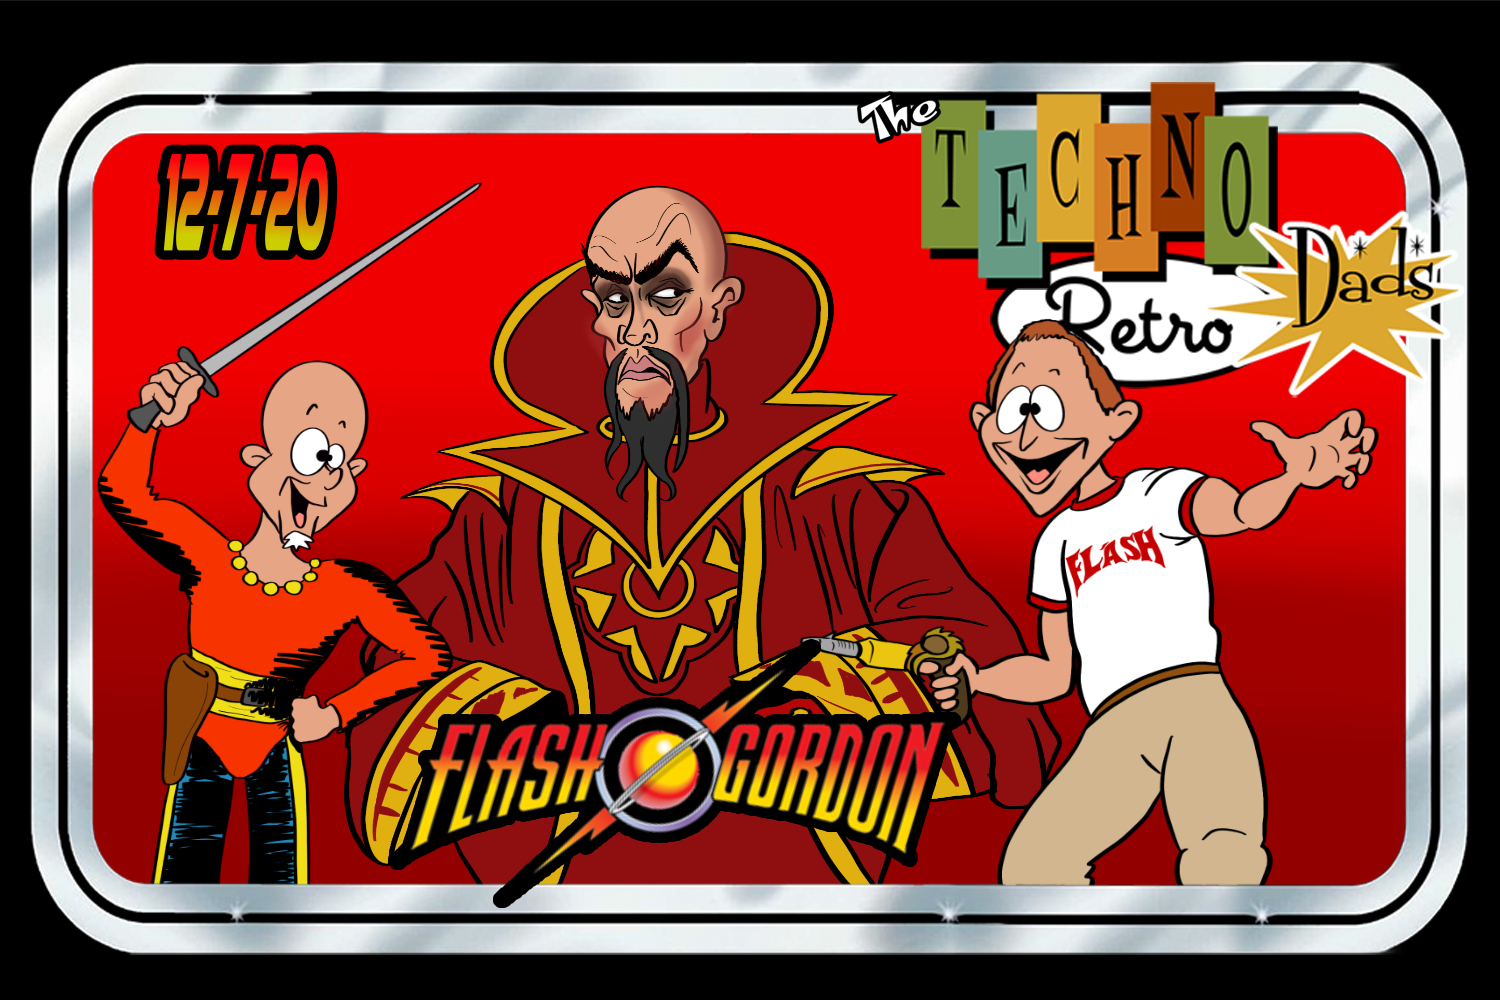 TechnoRetro Dads: 40 Years of Flash Gordon